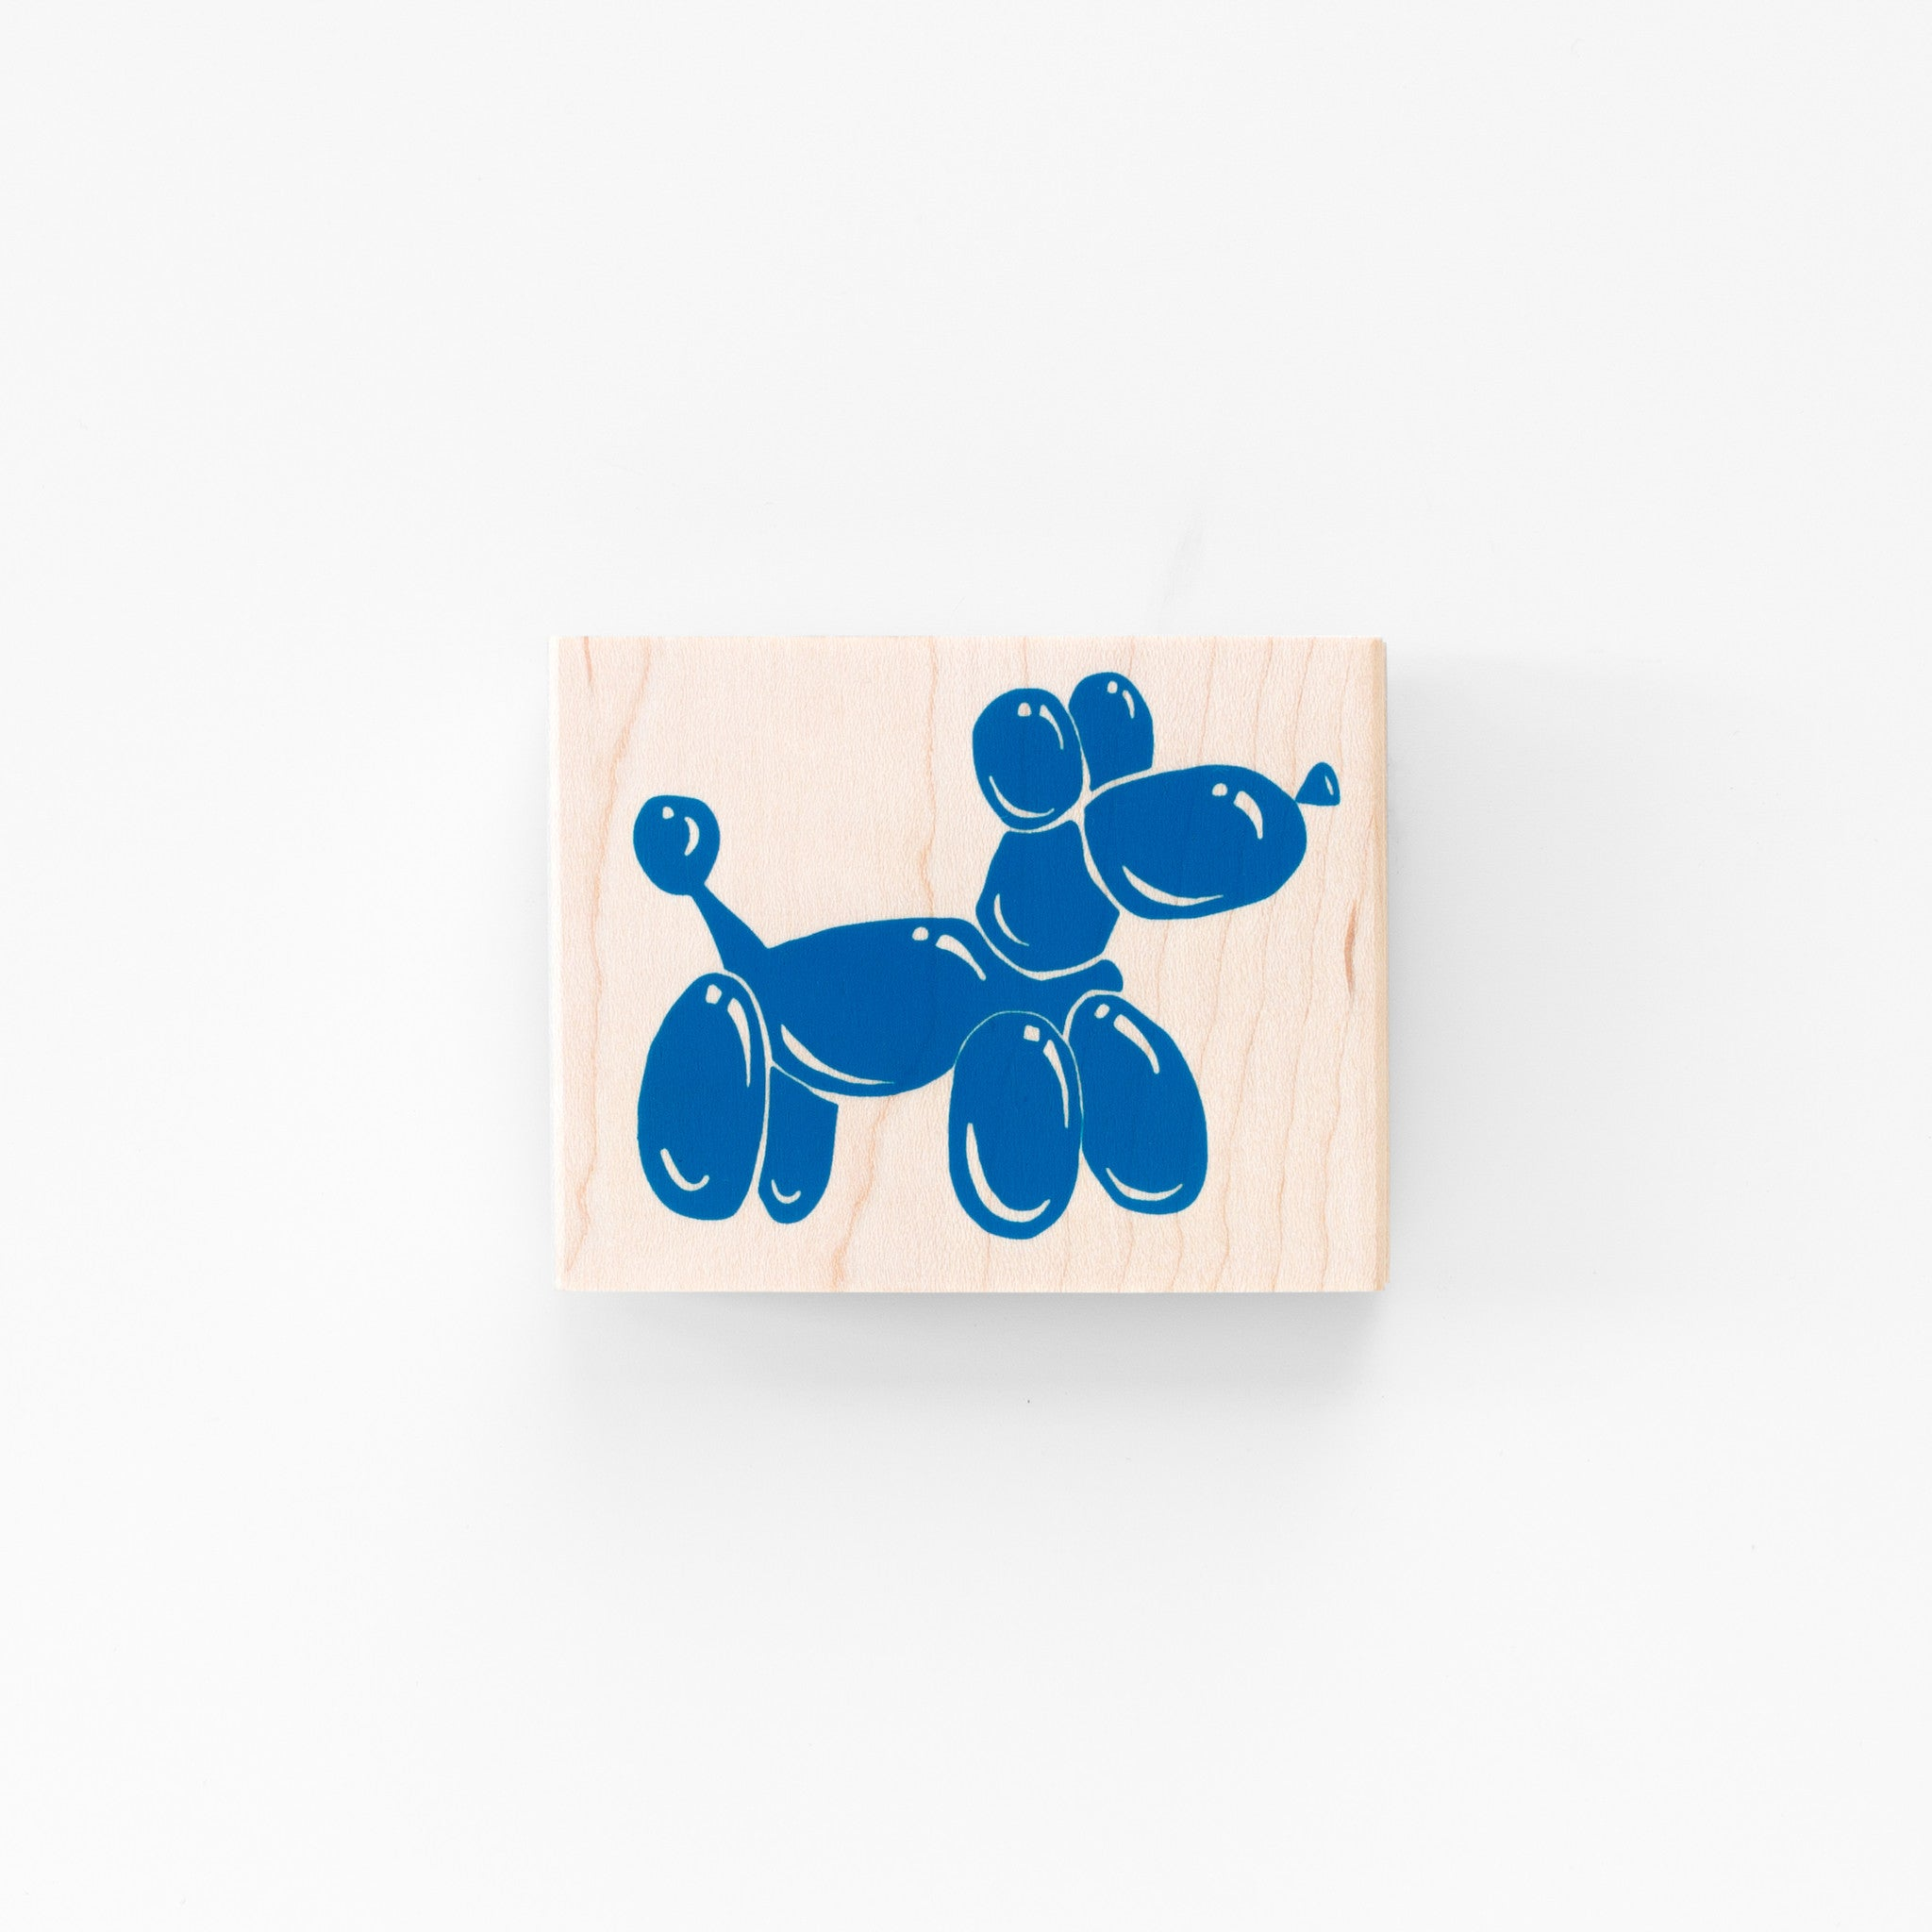 Balloon Animal Dog Rubber Stamp Modern Graphic